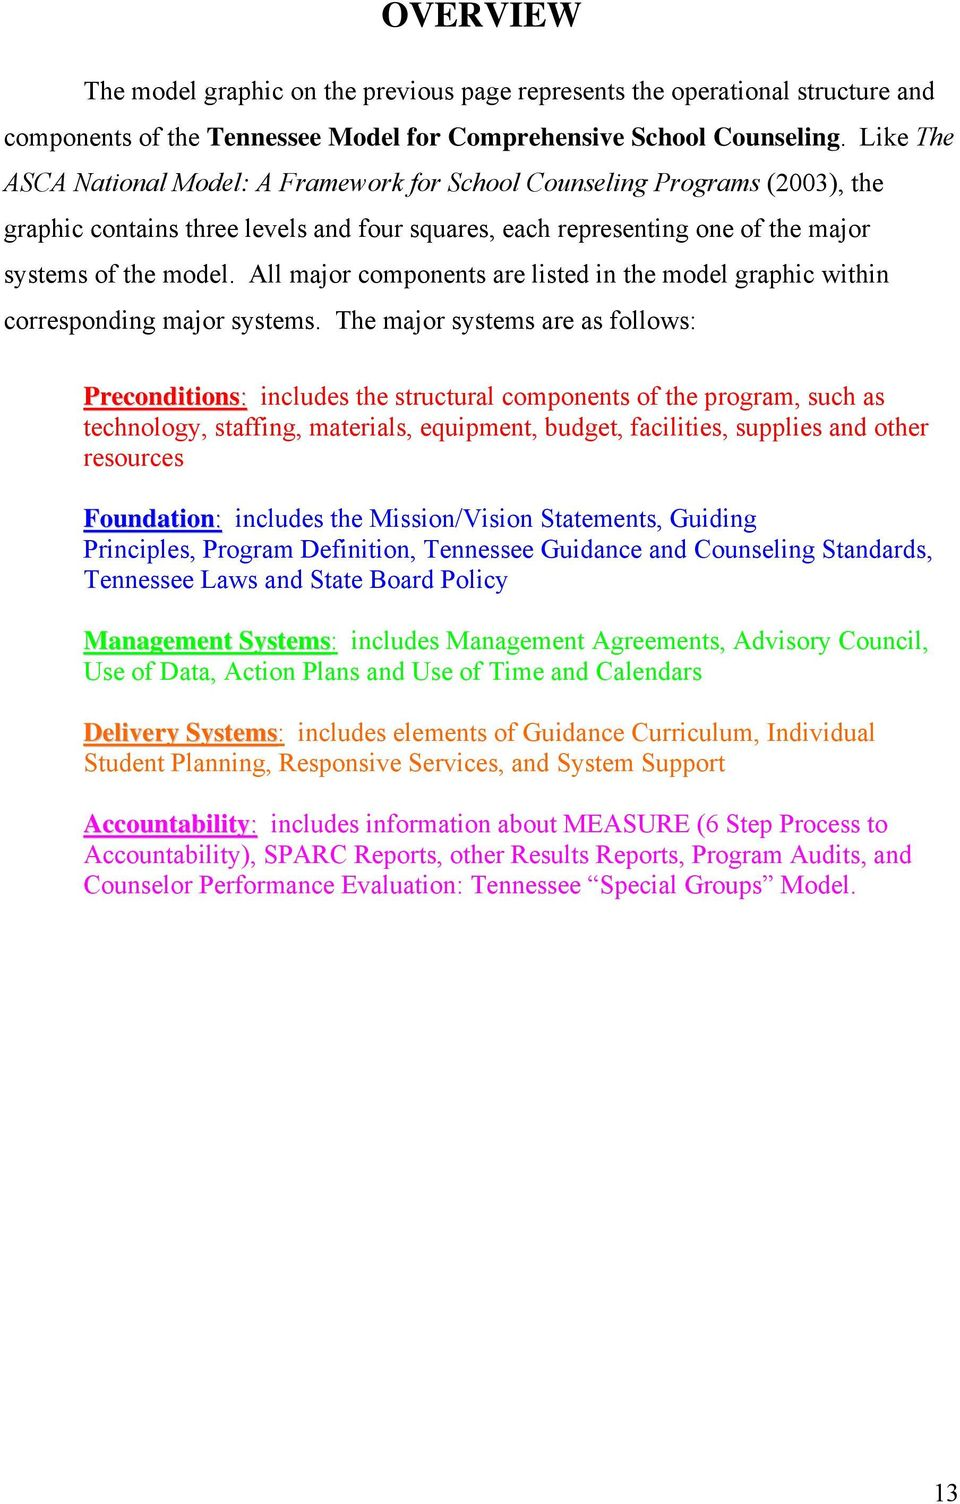 Tennessee Model For Comprehensive School Counseling Pdf